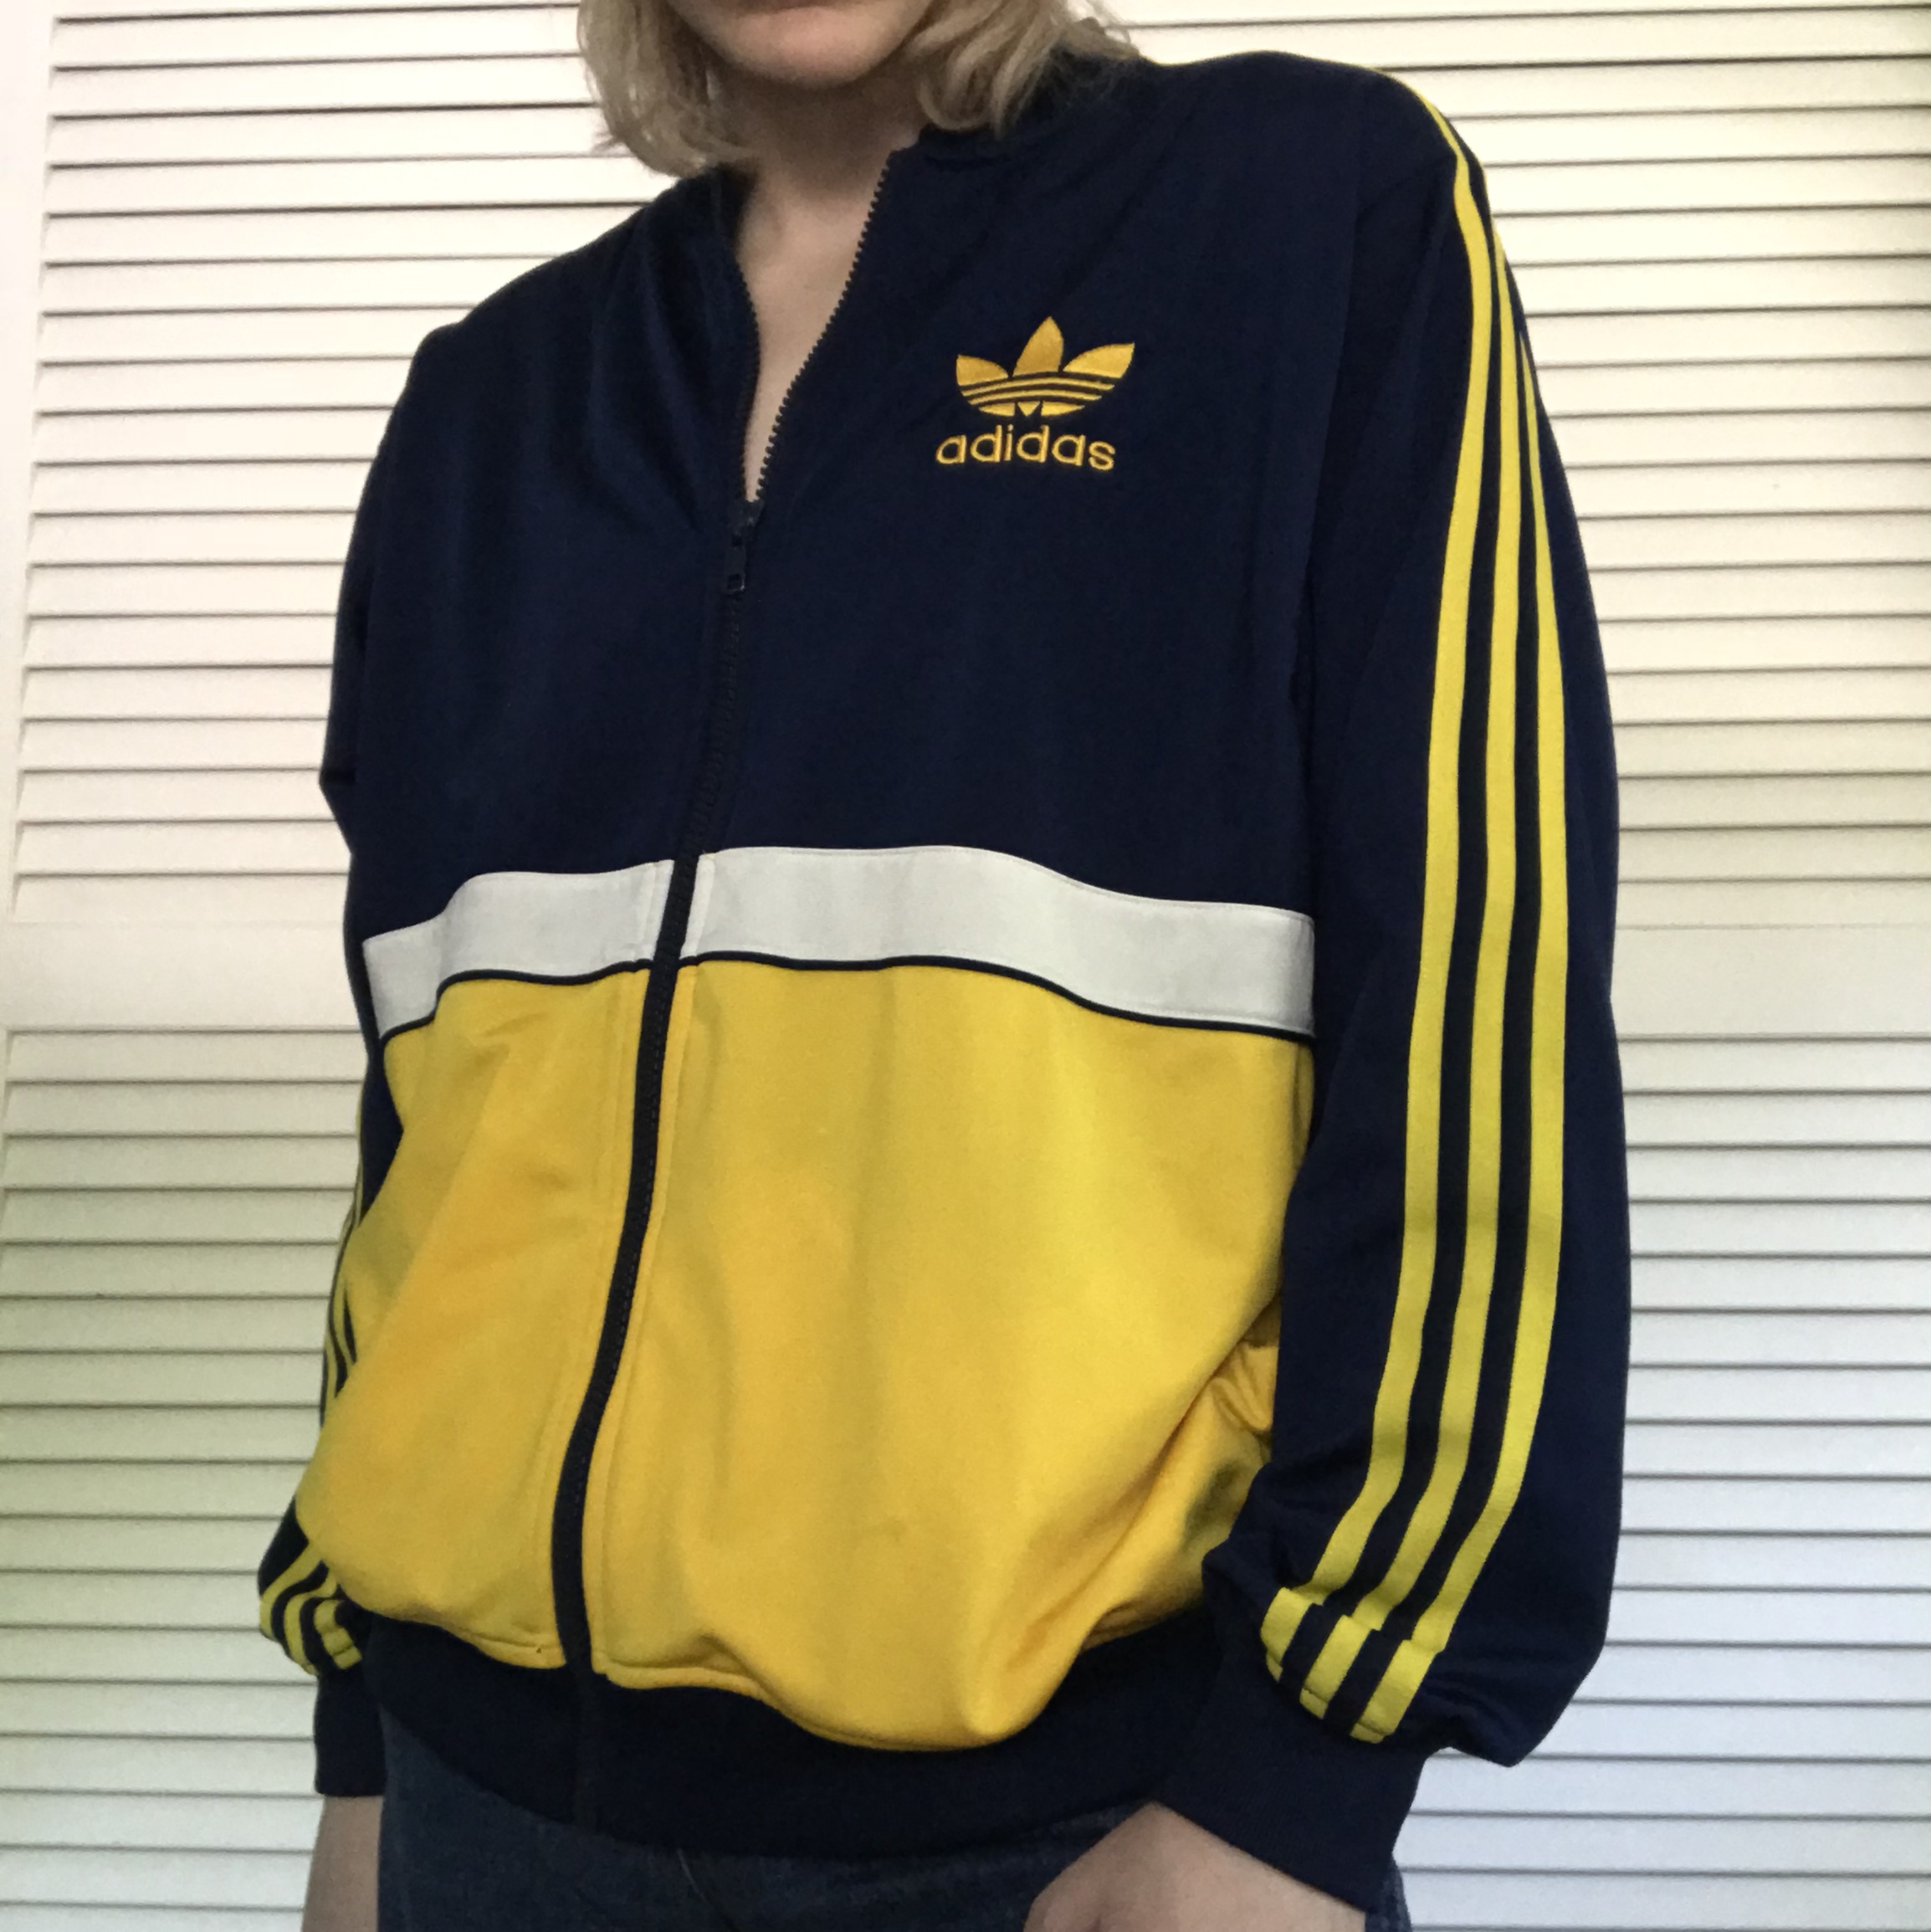 Vintage Adidas track jacket. Navy blue and yellow Depop